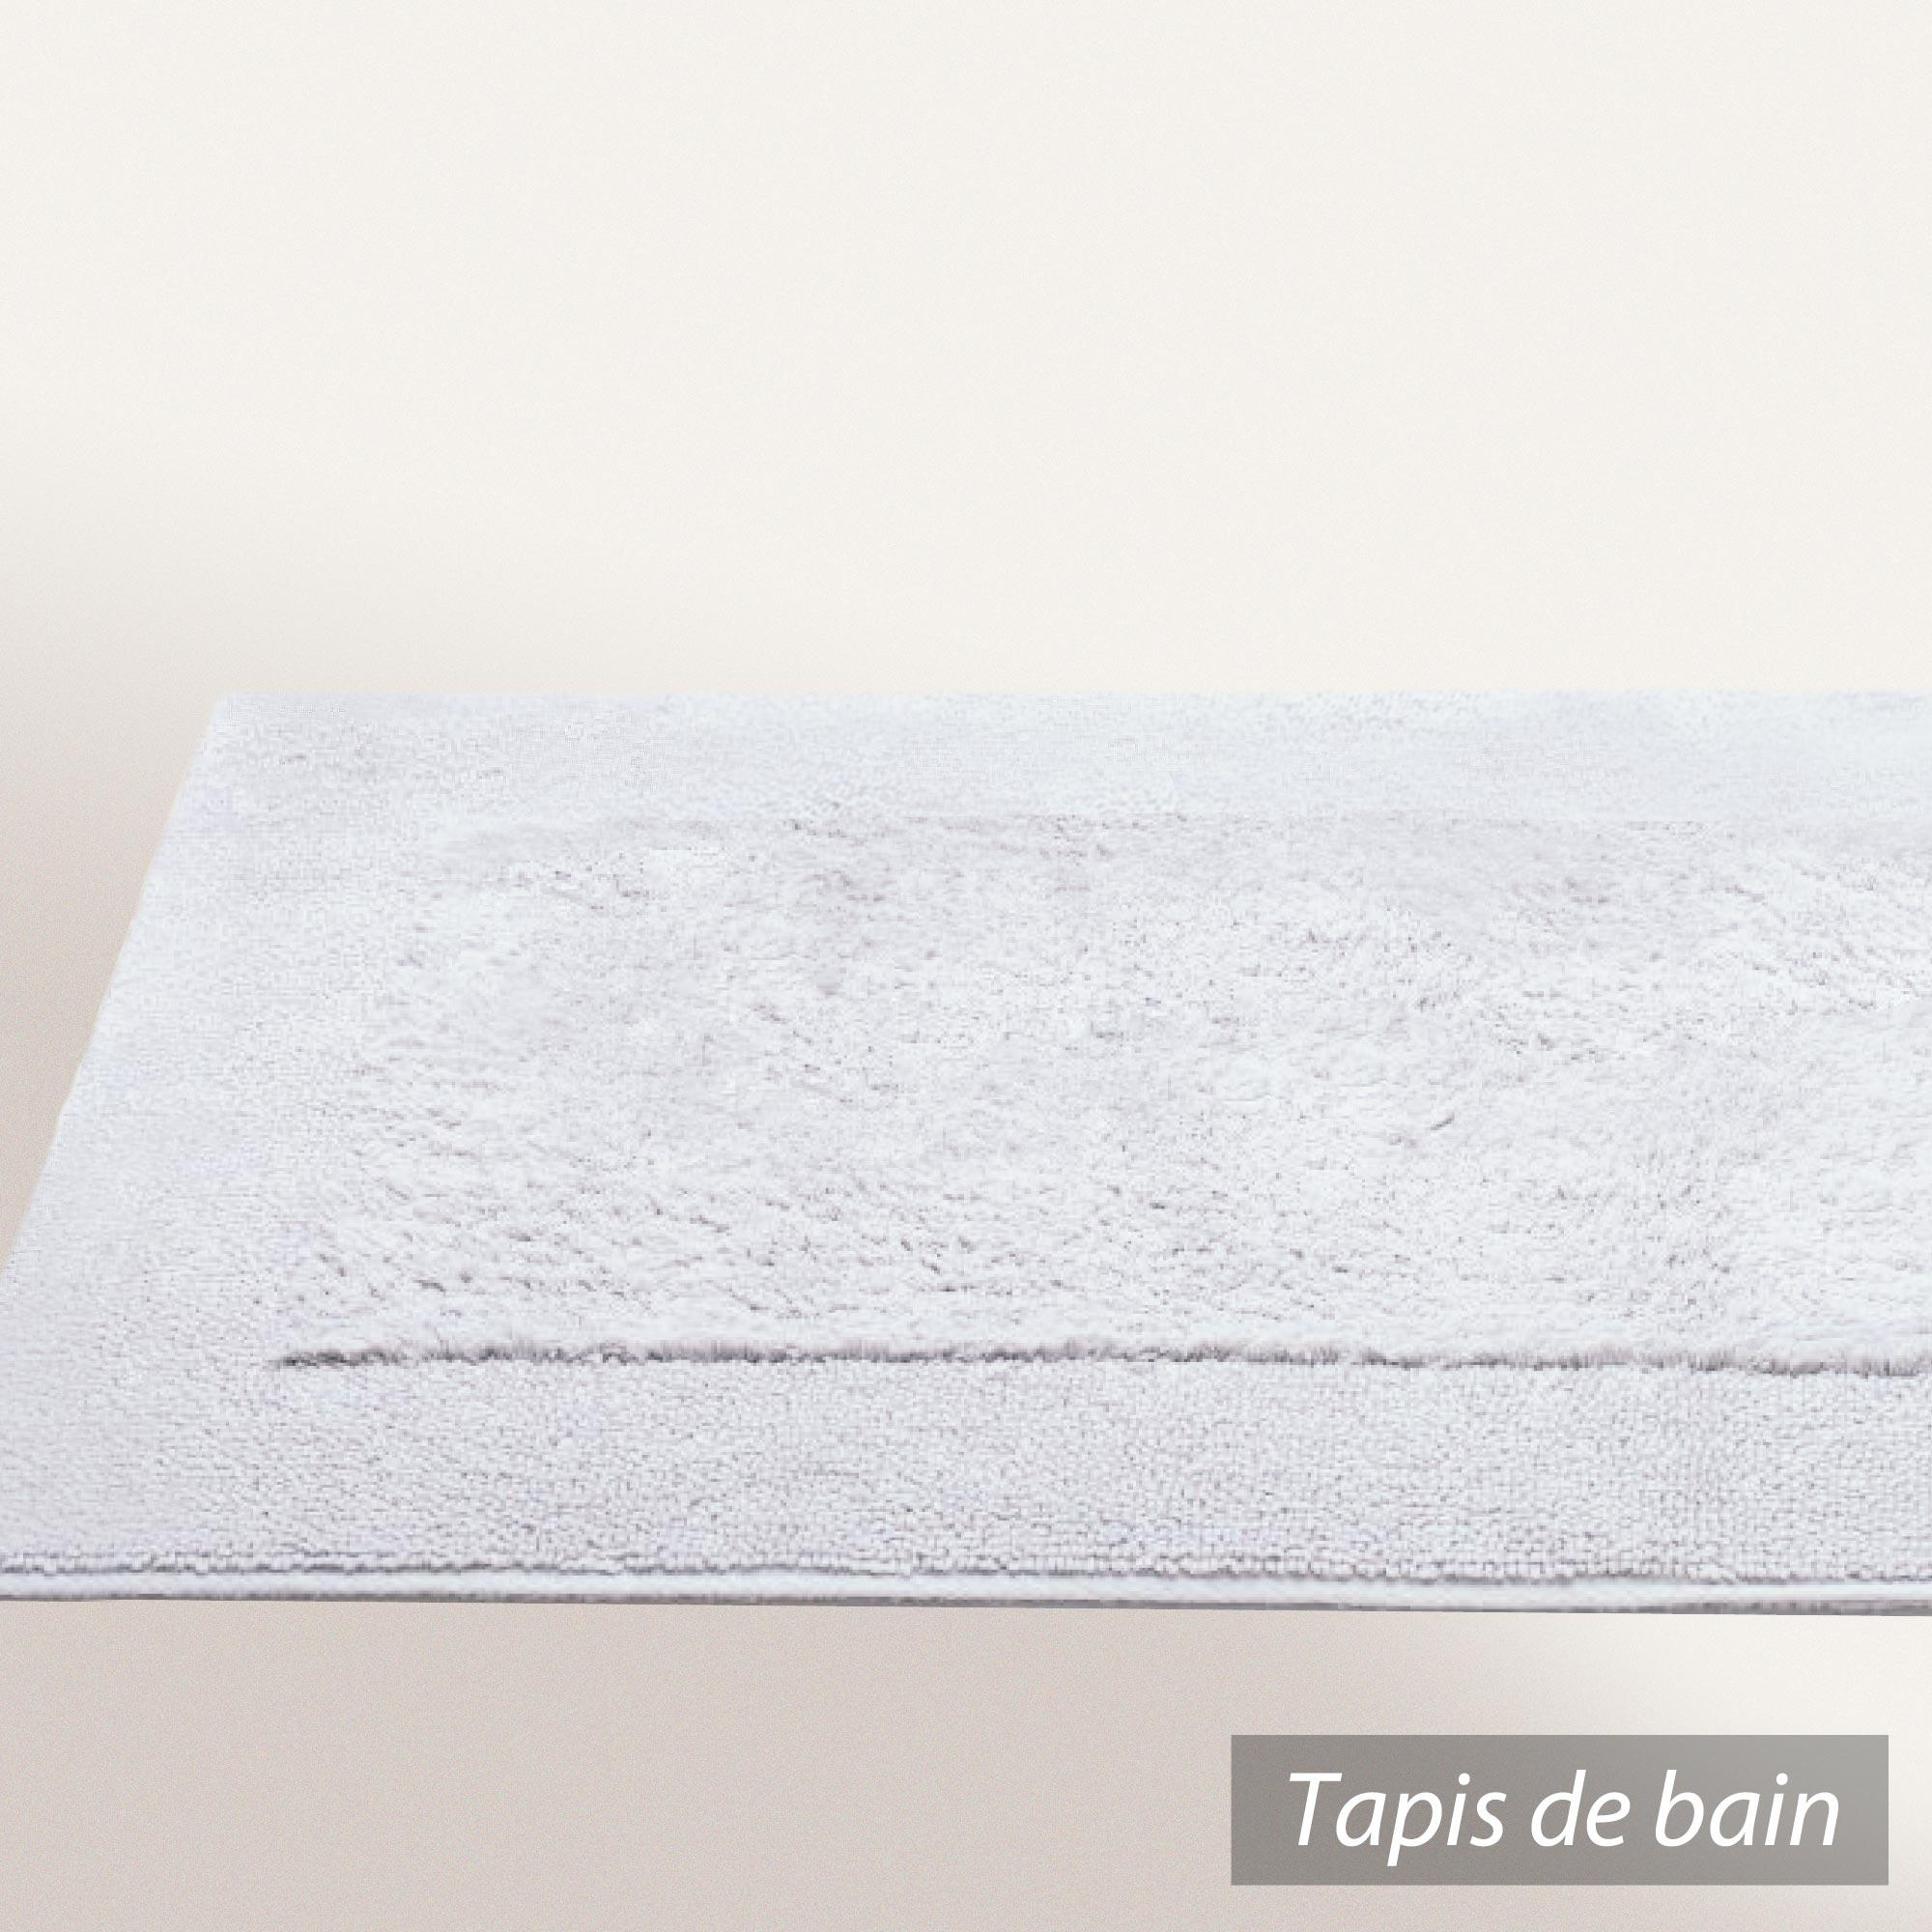 tapis de bain 60x90cm coton uni dream blanc linnea vente. Black Bedroom Furniture Sets. Home Design Ideas